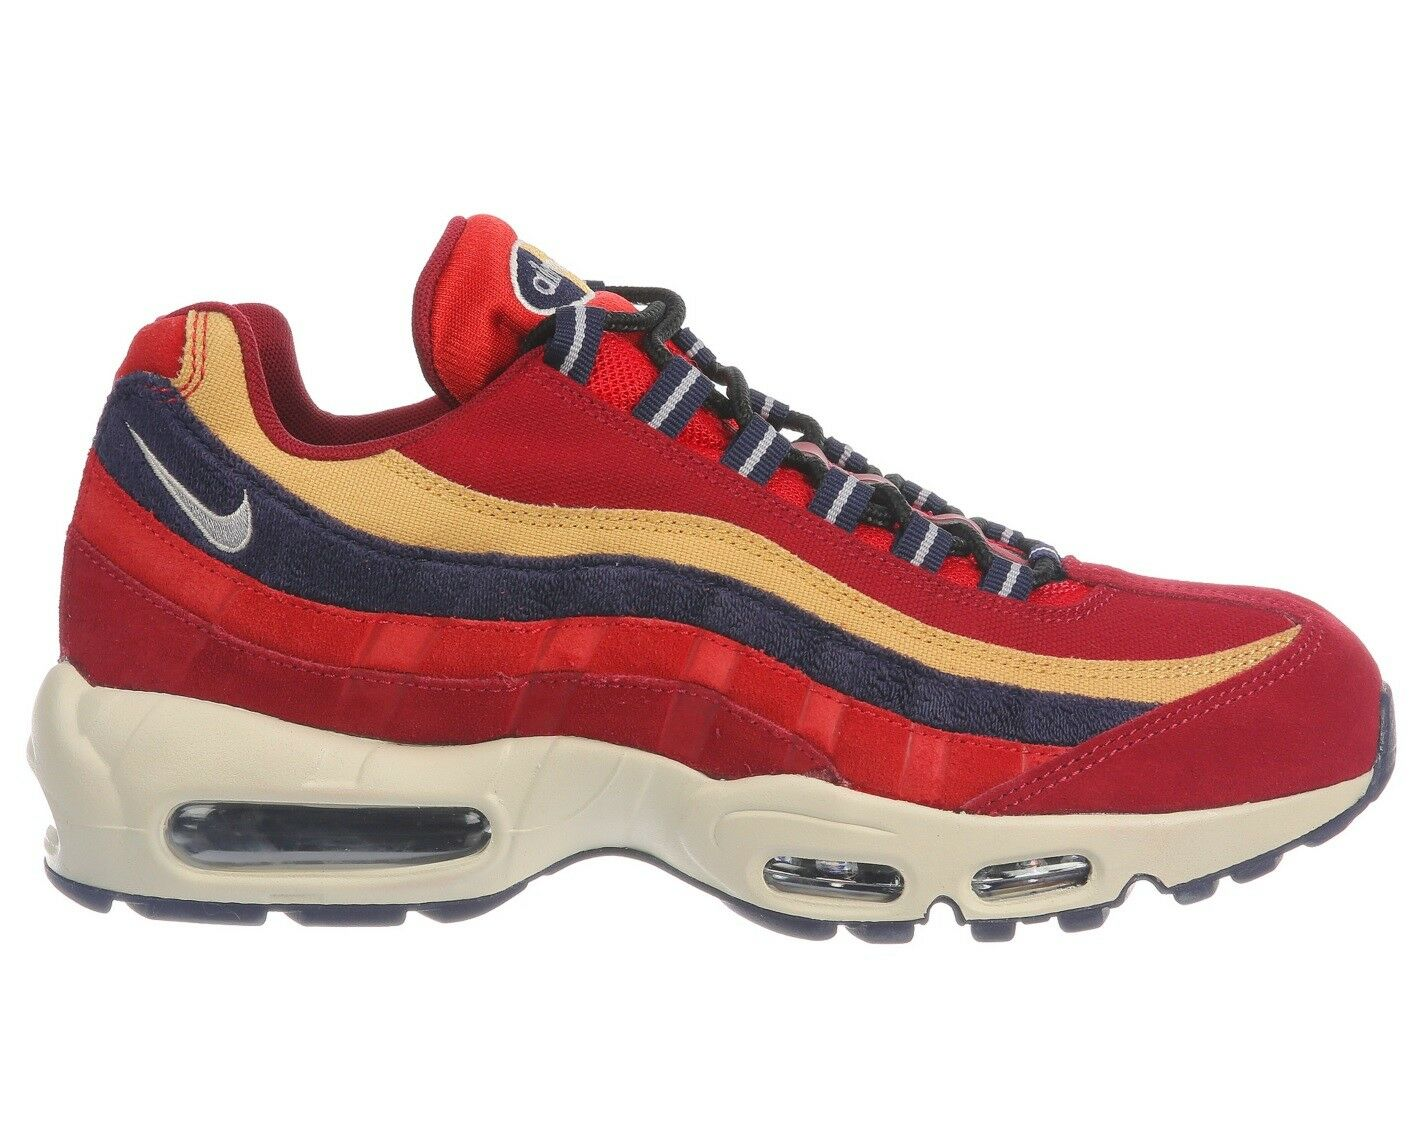 Nike Air Max 95 Premium Mens 538416-603 Red Purple Wheat Running Shoes Comfortable Special limited time